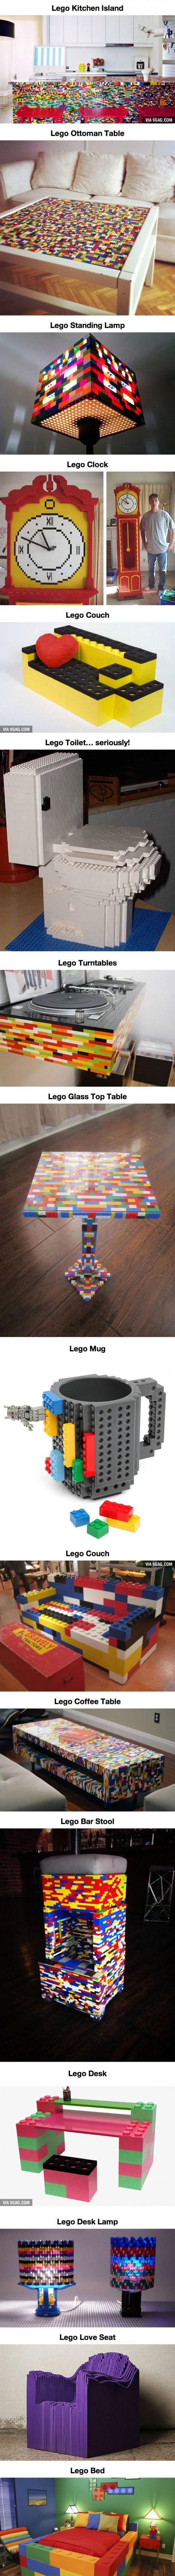 Appease Your Inner Child And Complete Your House With These Incredible Lego Furnishings